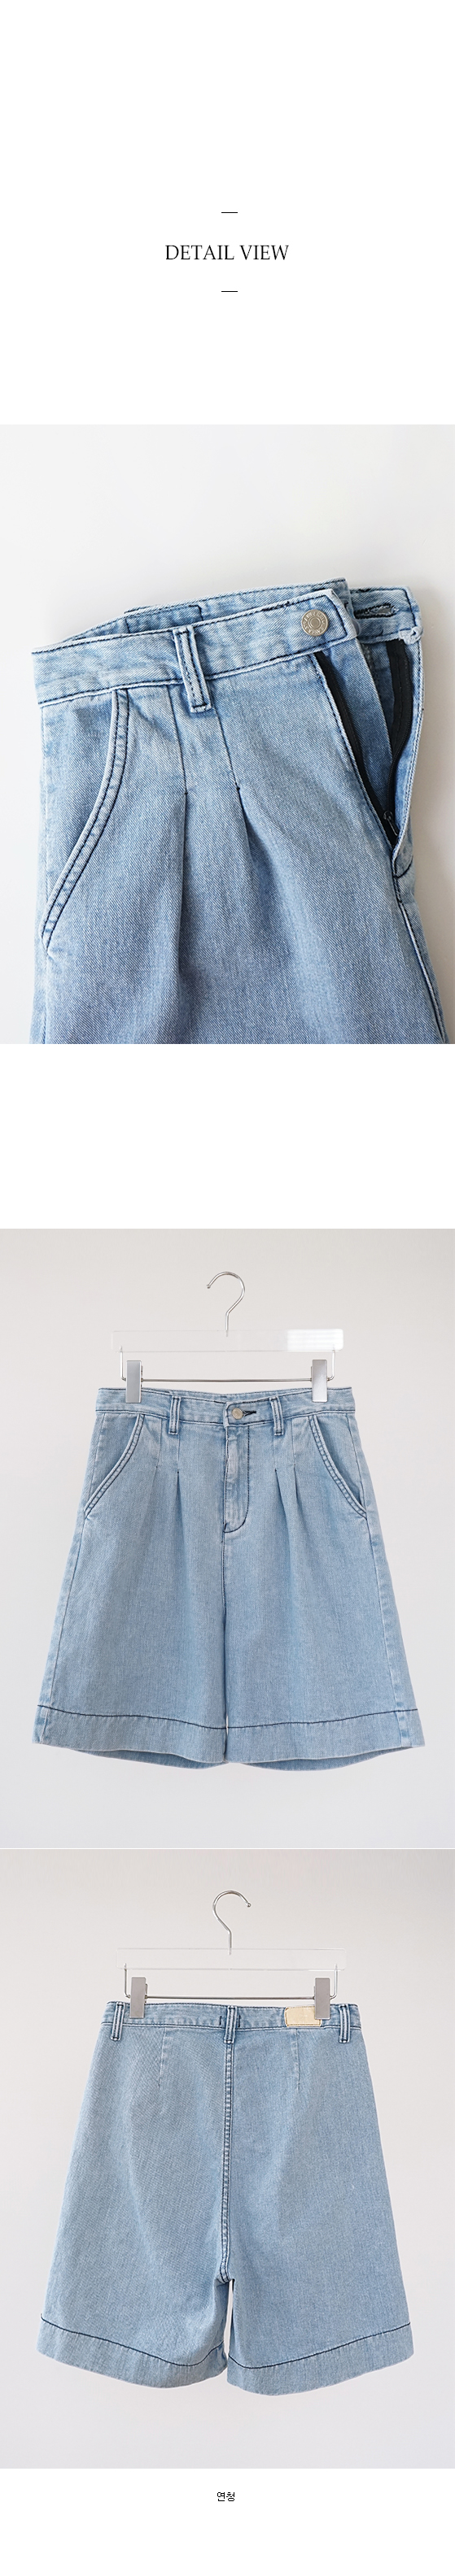 over-fit two-tuck denim shorts